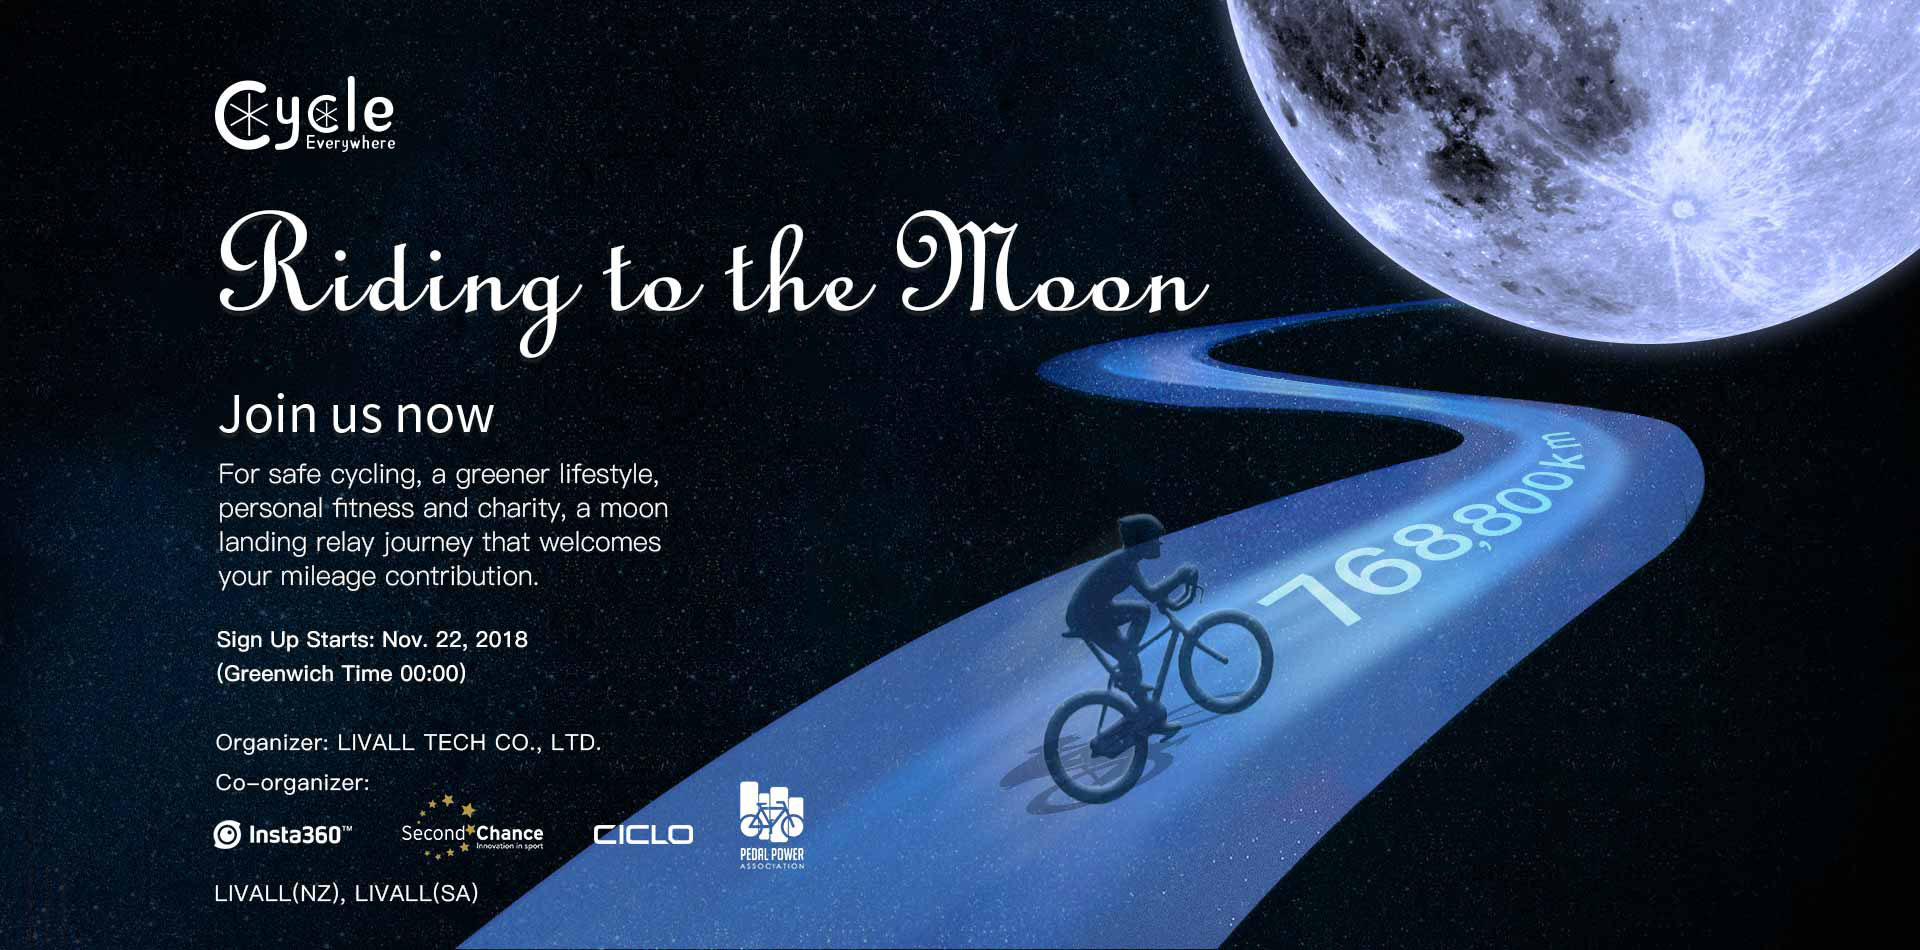 Riding to the moon  - Riding to the moon - Home